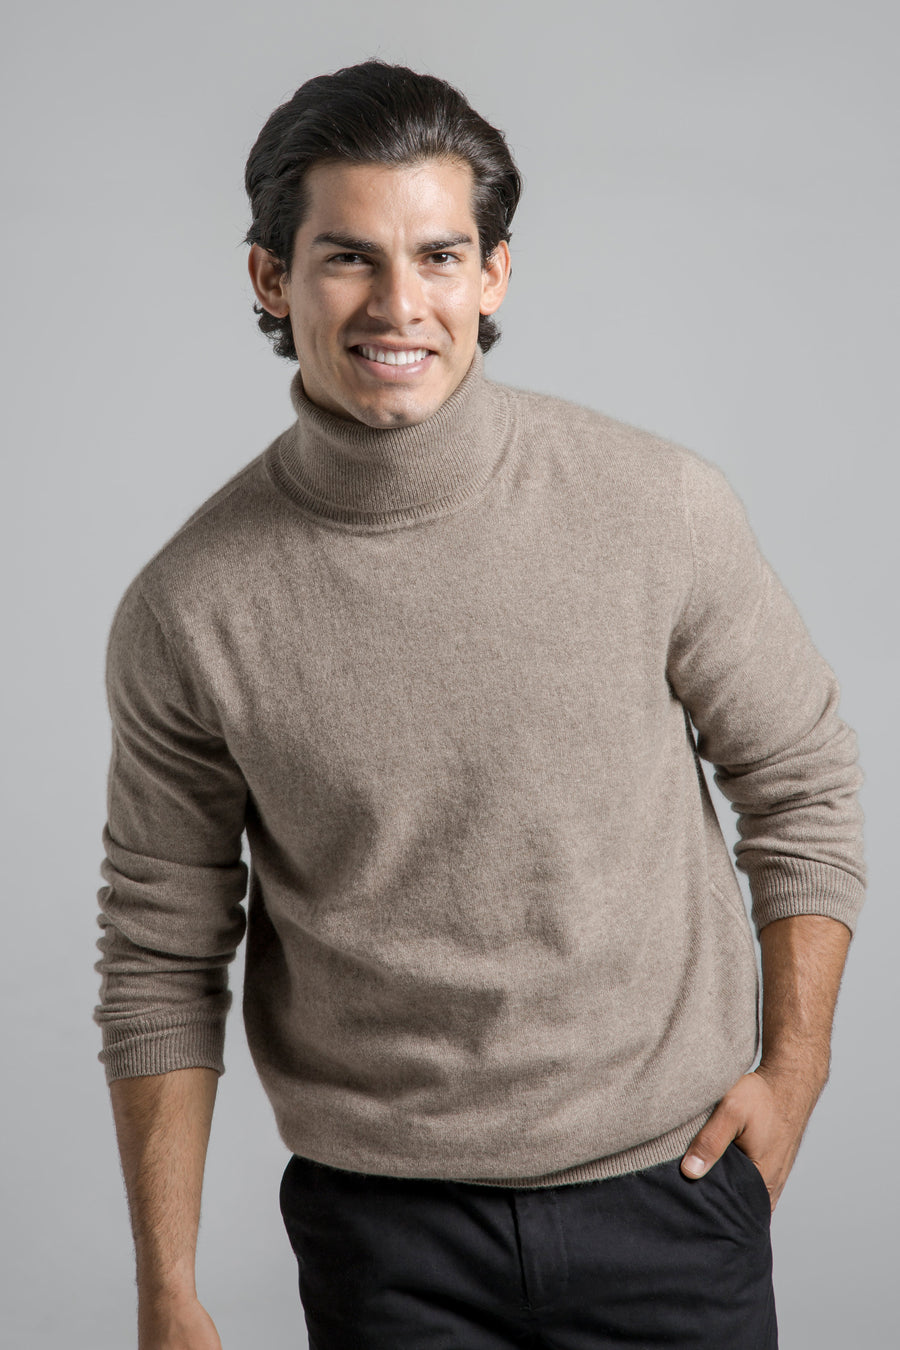 pine cashmere mens classic 100% pure organic cashmere turtleneck sweater in brown